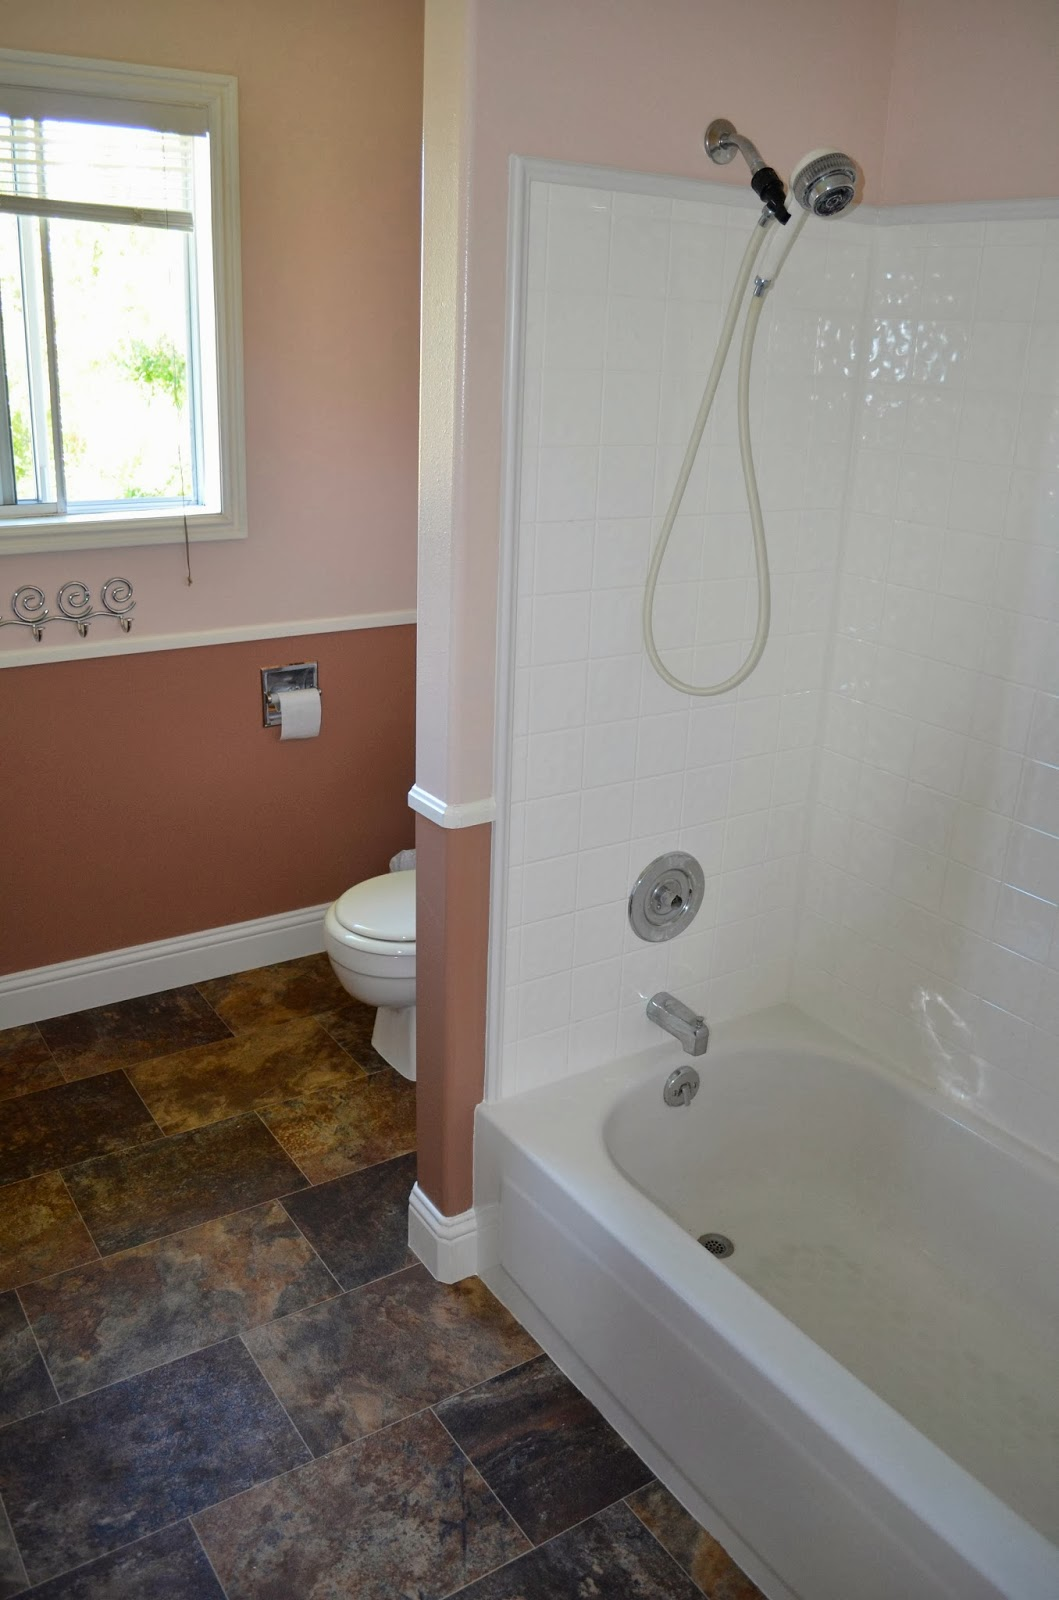 One thing leads to another - Mostly DIY bathroom repair and remodel ...